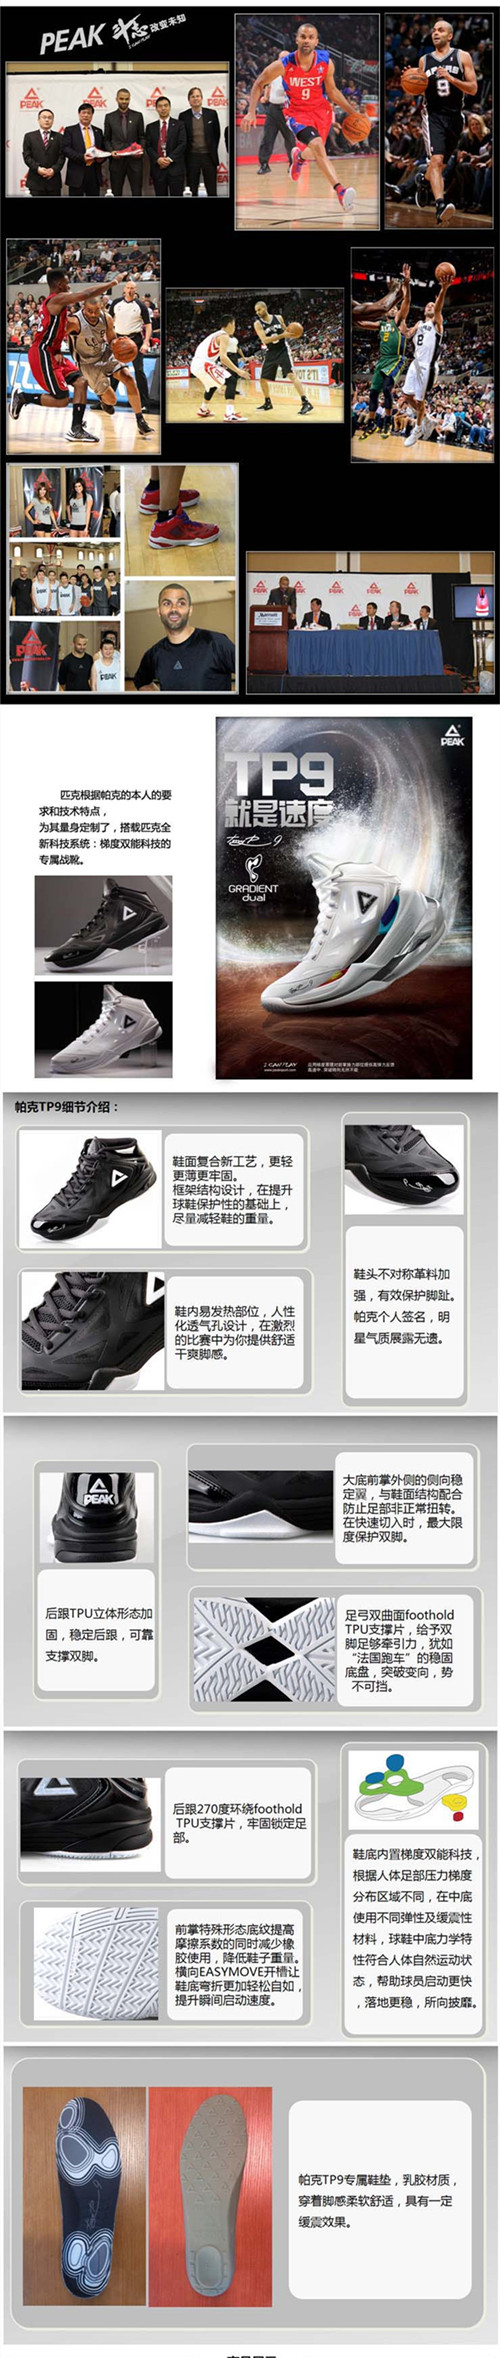 PEAK TP9 Tony Parker Signature Basketball Shoes